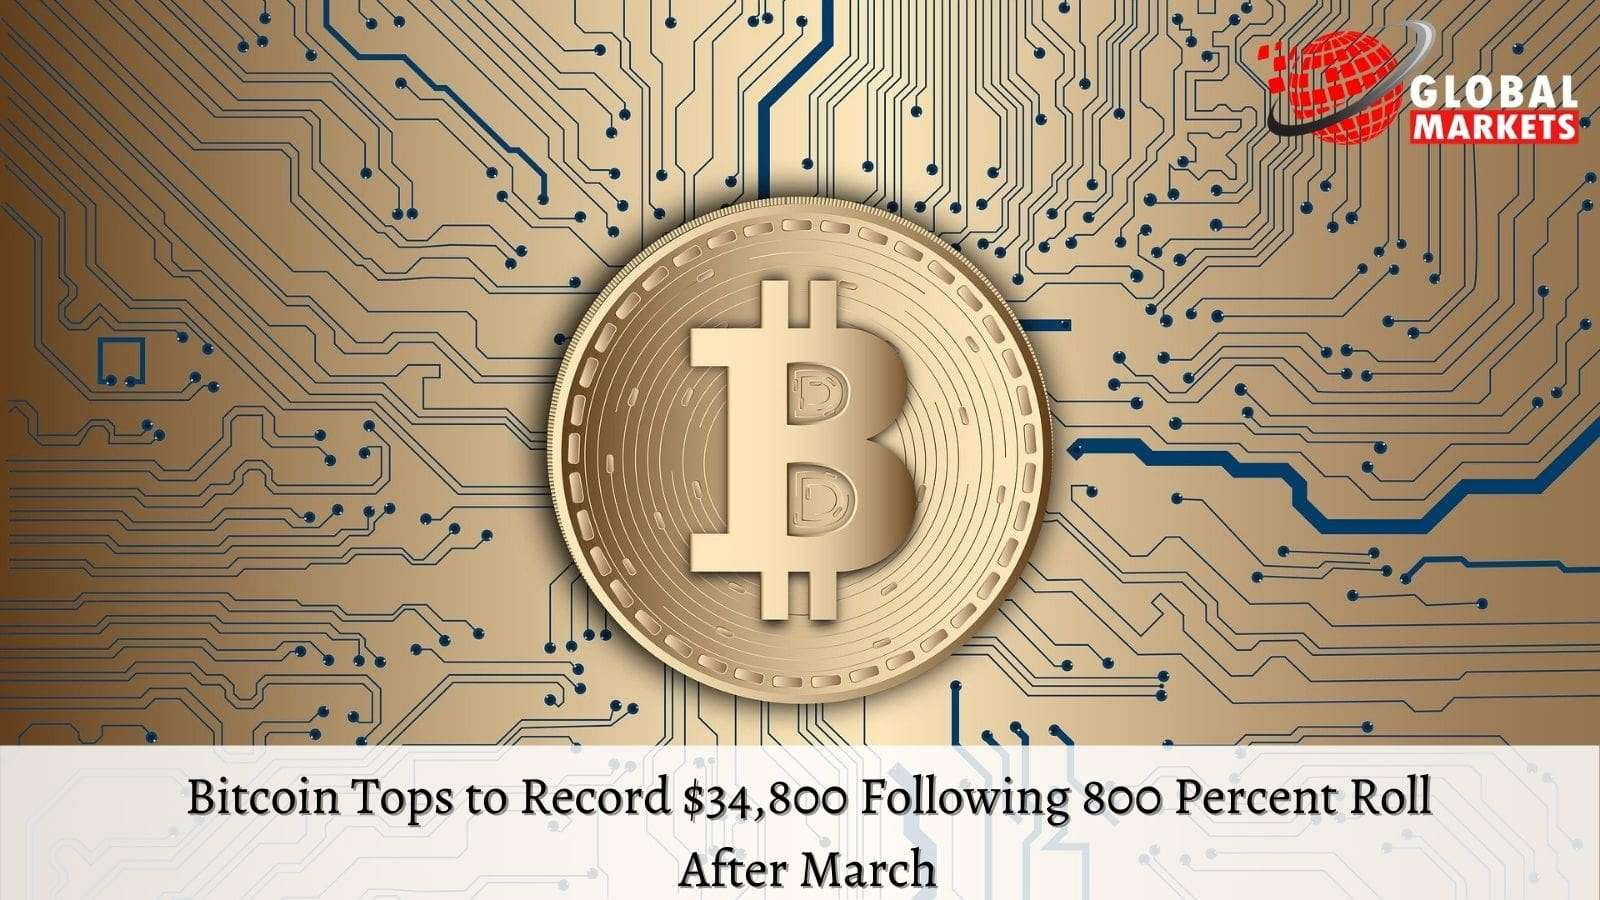 Bitcoin Tops to Record $34,800 Following 800 Percent Roll After March